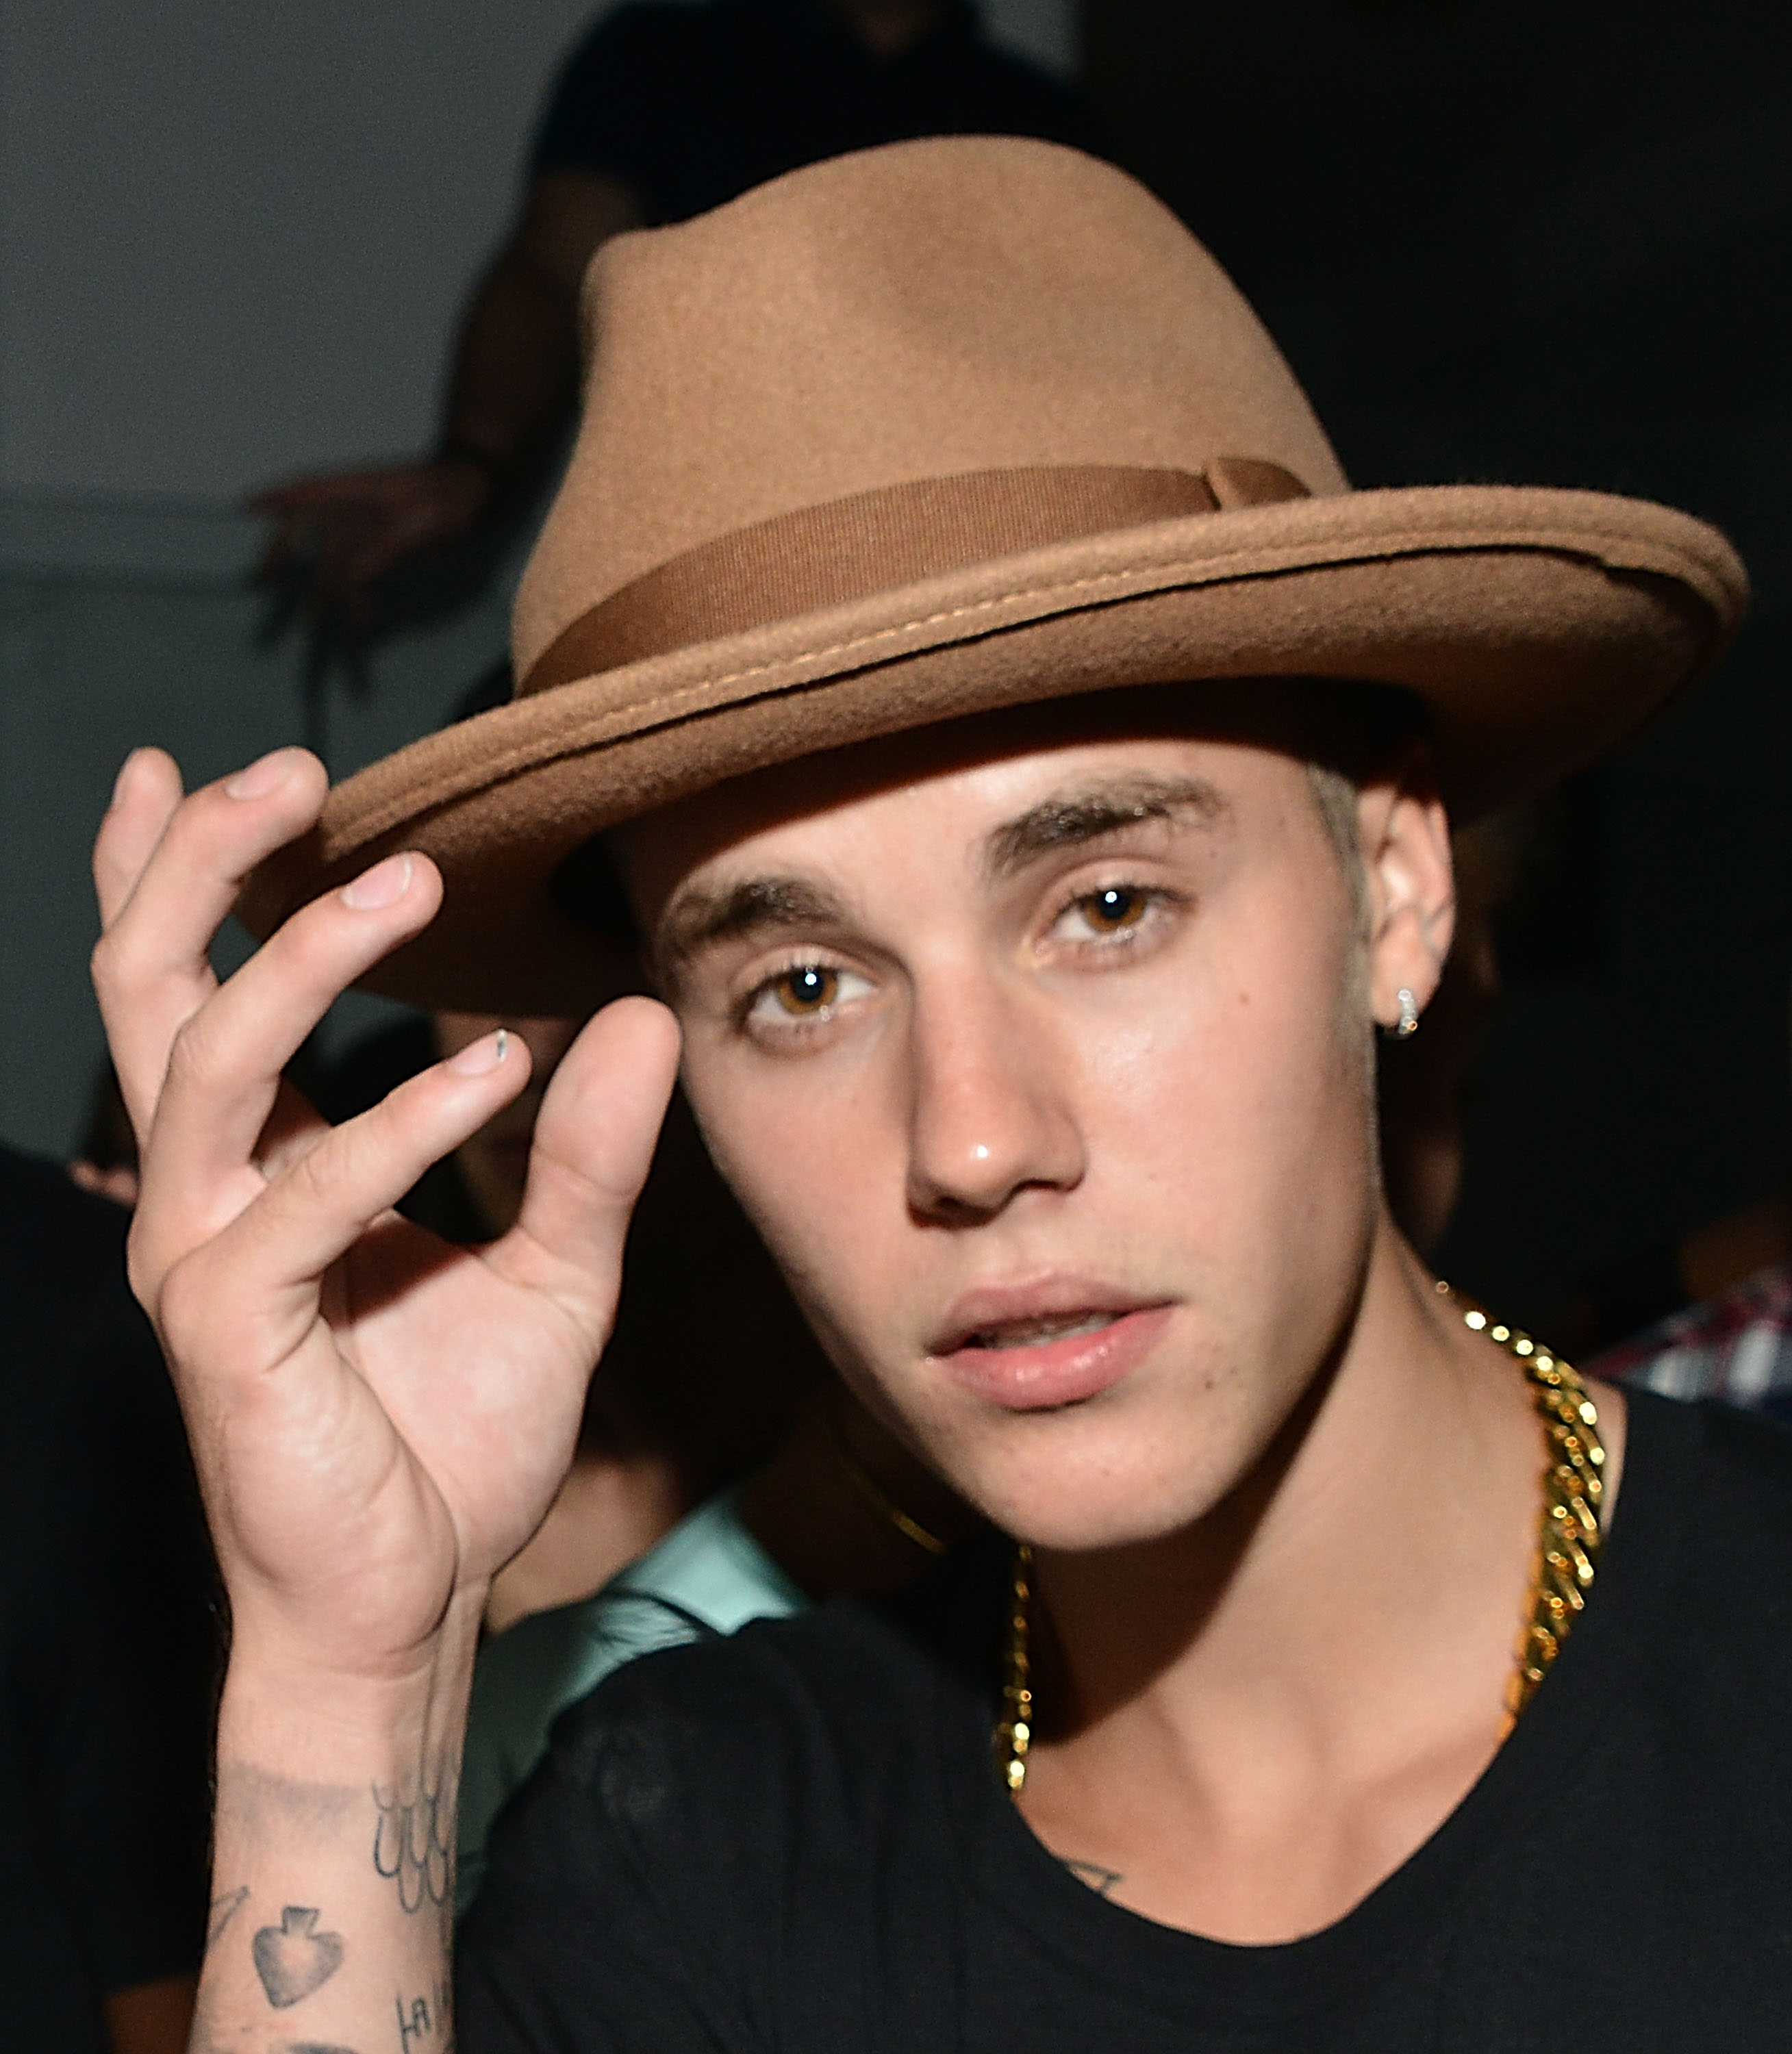 Justin Bieber attends a VMA Pre-Party on August 23, 2014 in Los Angeles.